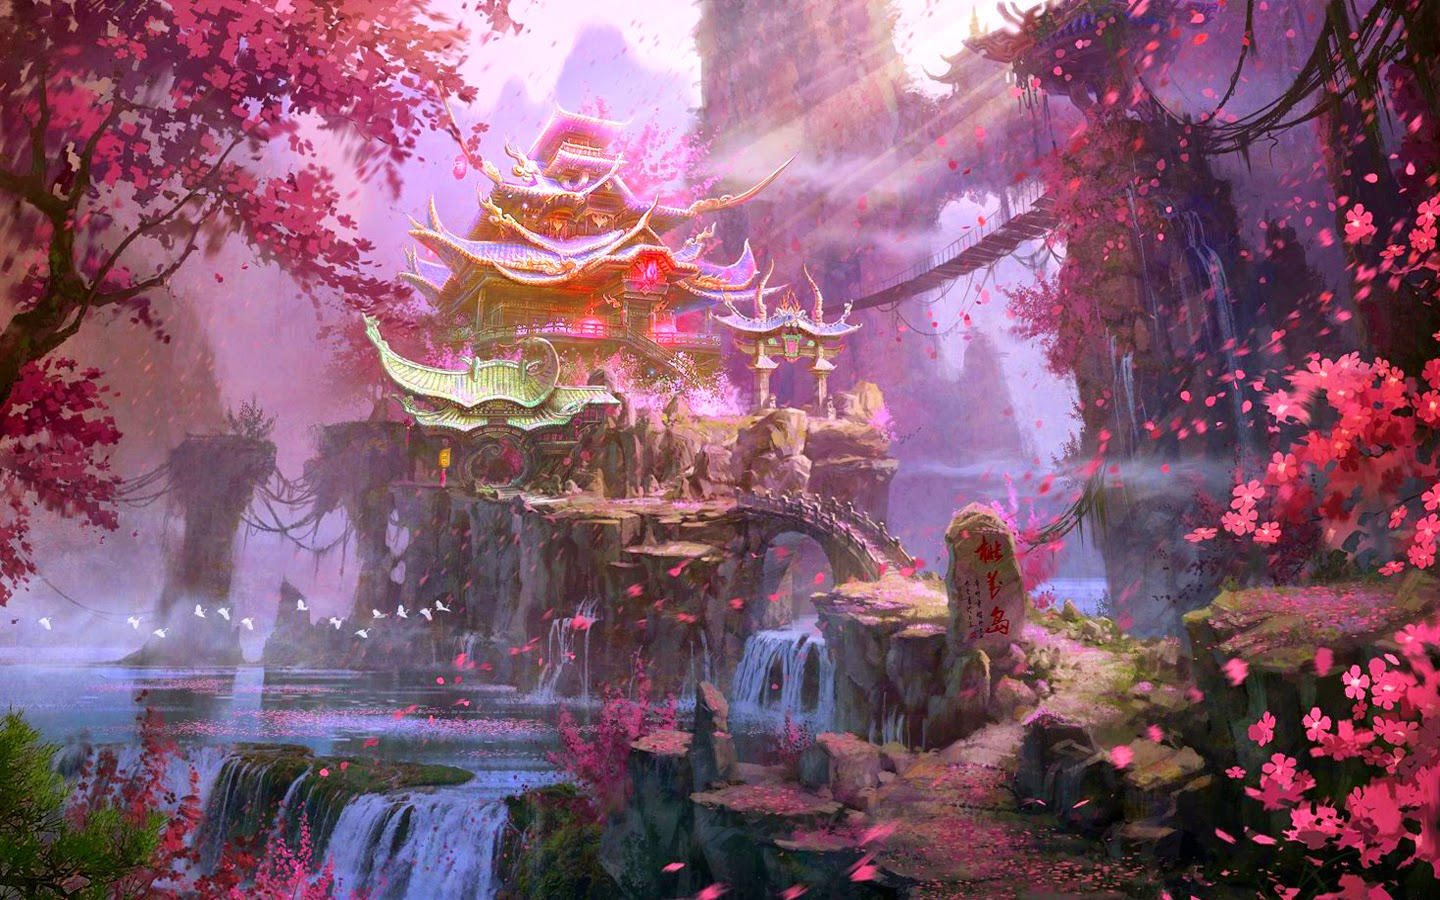 Mohan Name 3d Wallpapers Hd Wallpapers Hdwallpapers Org In Beautiful Fantasy Hd